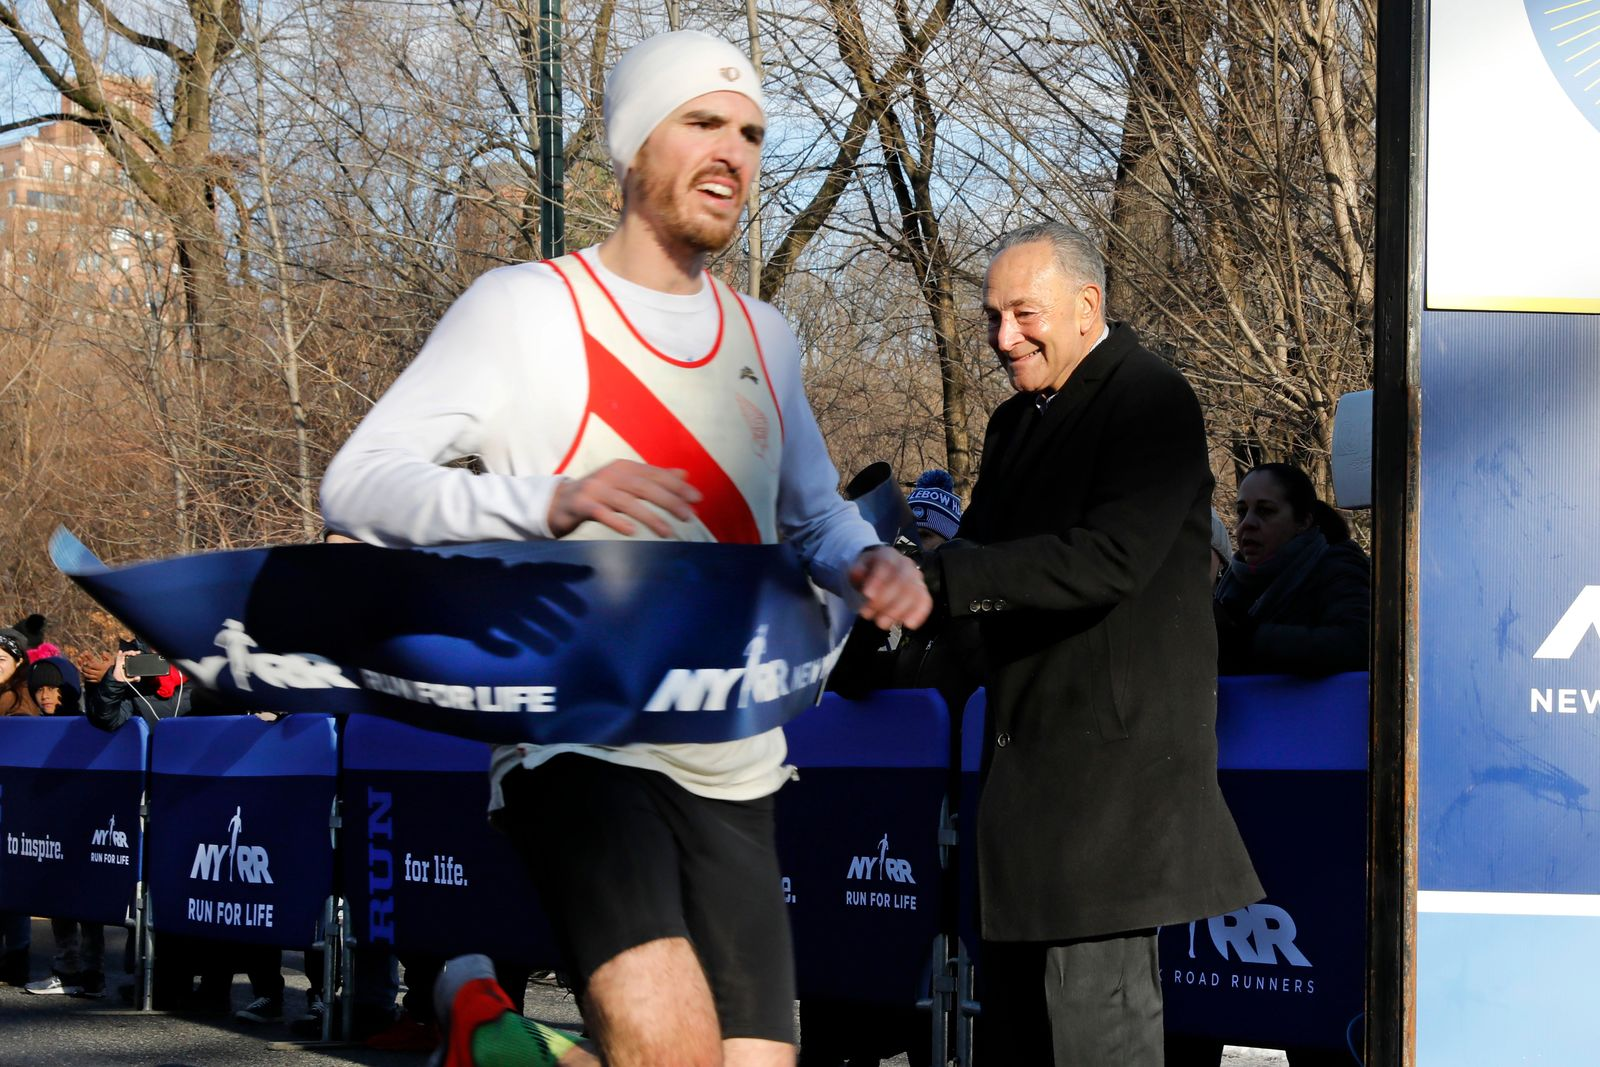 U.S. Senate Minority Leader Chuck Schumer, D-N.Y., holds the finish line tape, as Sean Swift, of Cranford, N.J., sets a course record to win the Fred Lebow Half Marathon, in New York's Central Park, Sunday, Jan. 19, 2020. (AP Photo/Richard Drew)